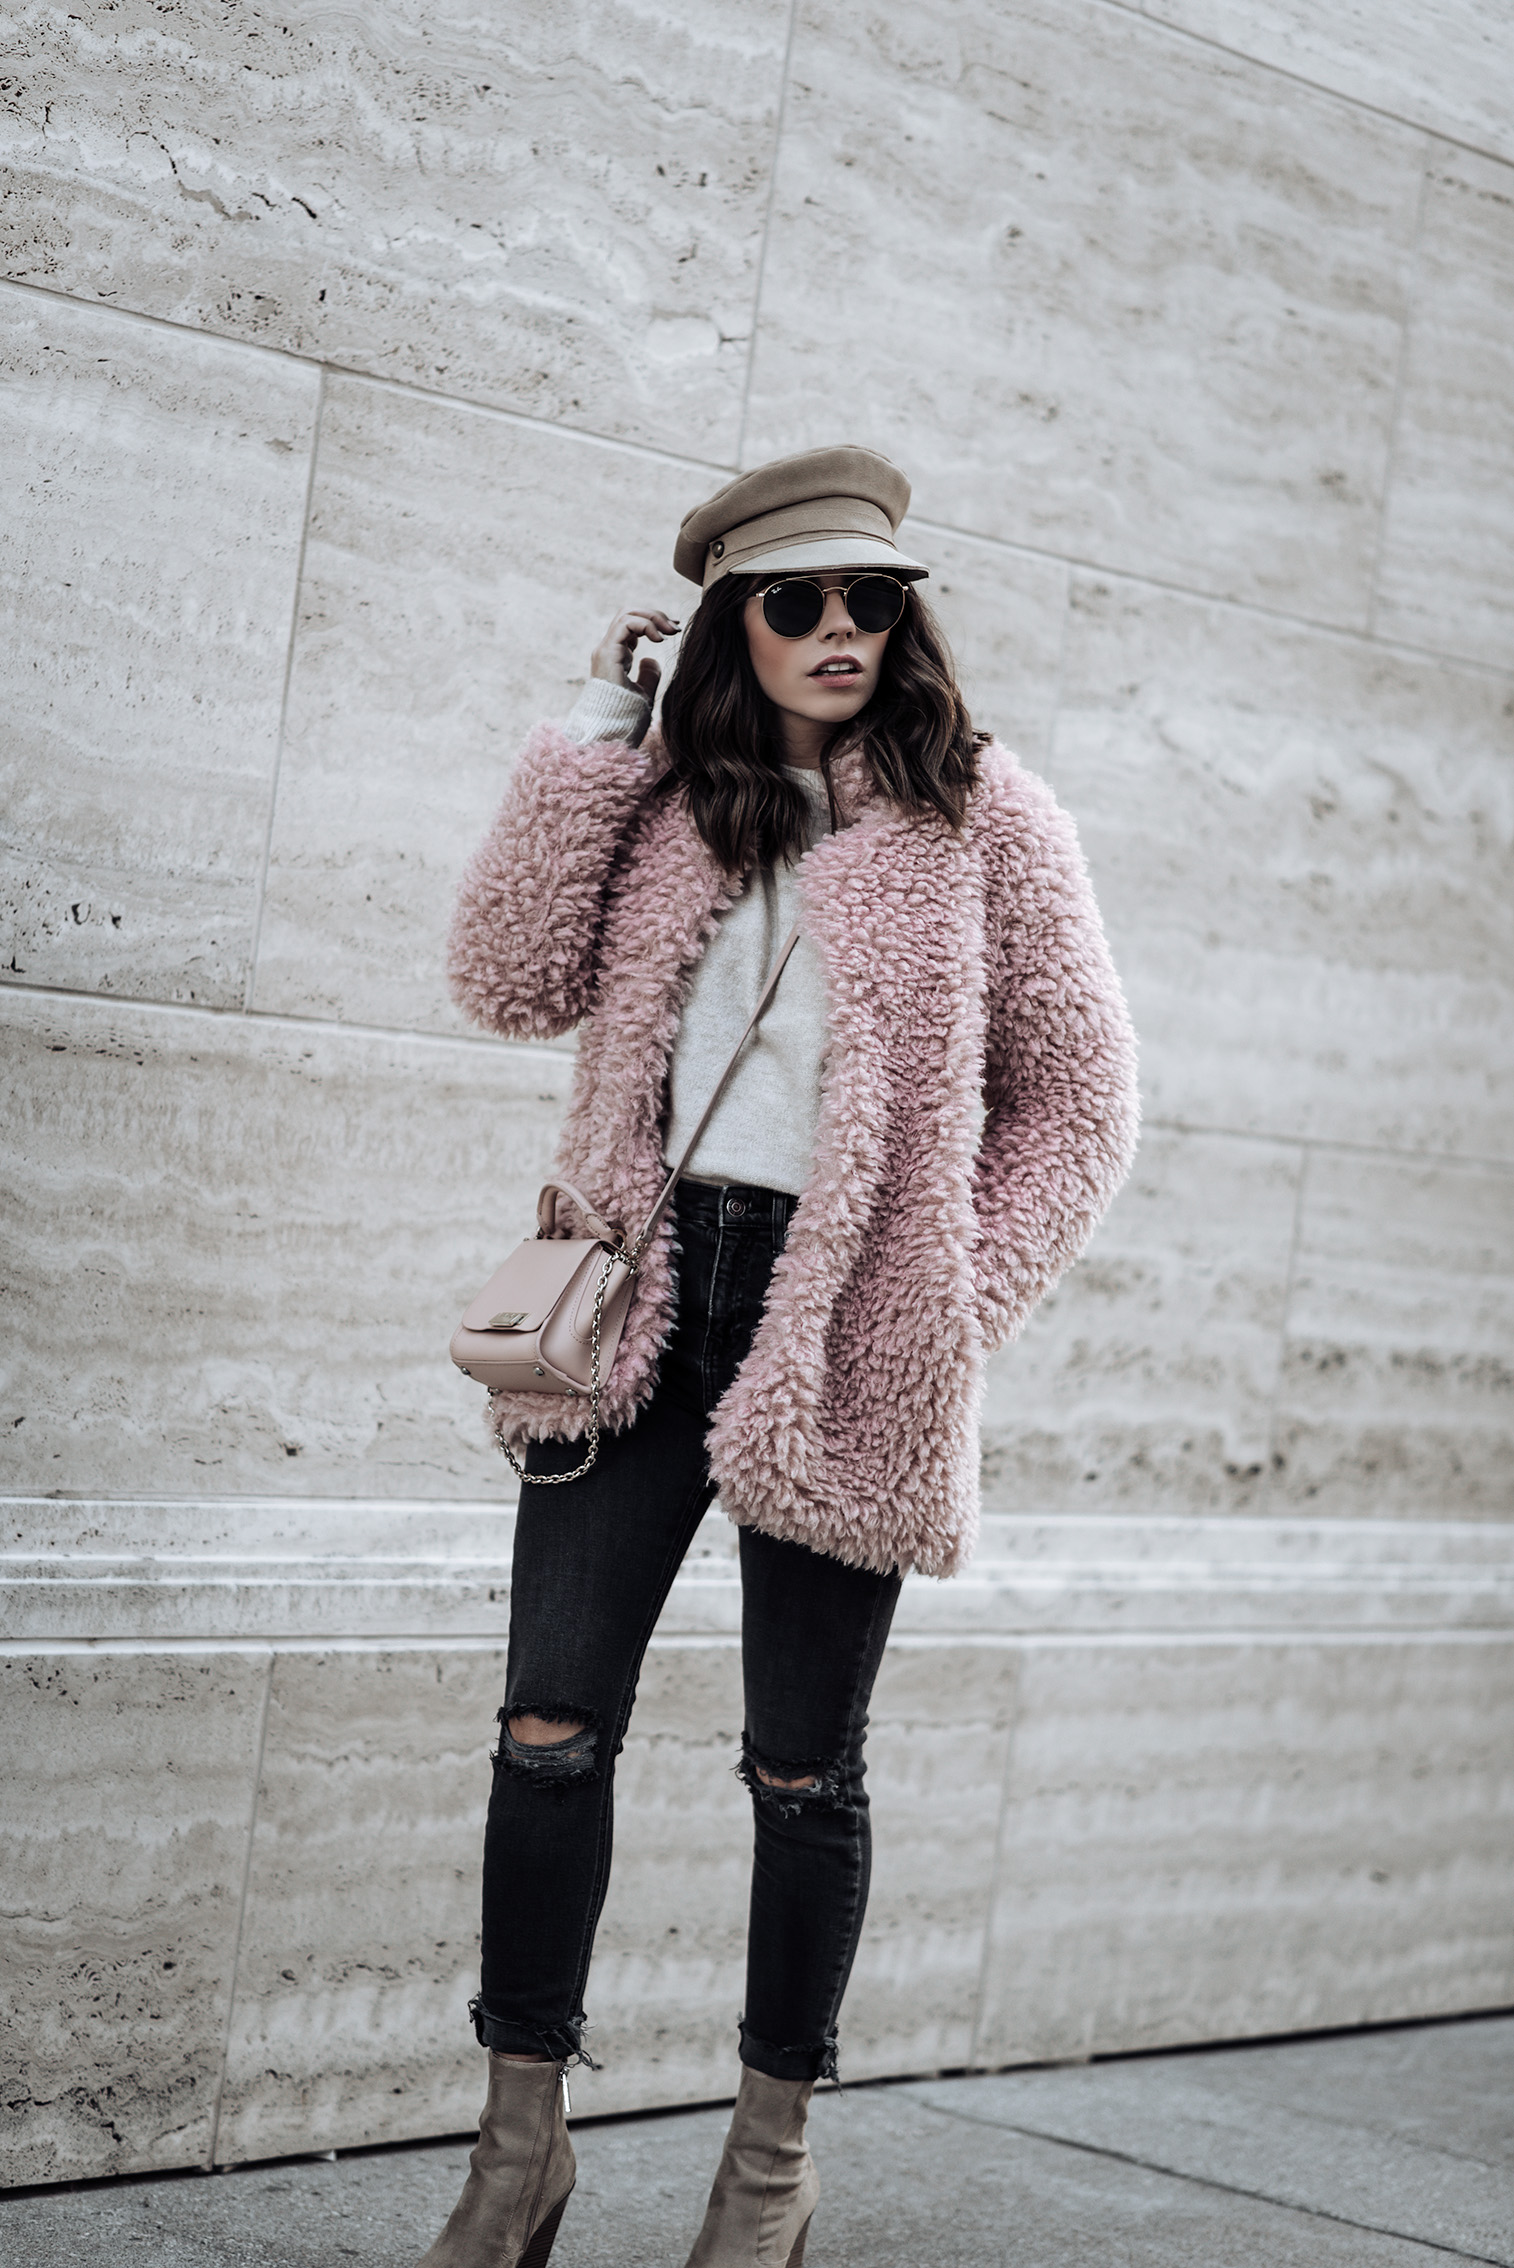 Click to shop the look: Pink Shaggy Faux Fur Coat (Amazon, also love this) | Citizens of Humanity Rocket Skinny Jeans in Distressed Dark Wash | KENDALL + KYLIE Fallyn Bootie in Camel (also similar here for less) | Lack of Color Lola Cap | 51 mm Ray-Ban Sunglasses | ASOS Nude Sweater #fauxfur #streetstyle #rippeddenim #blog #fashionblog #outfitideas